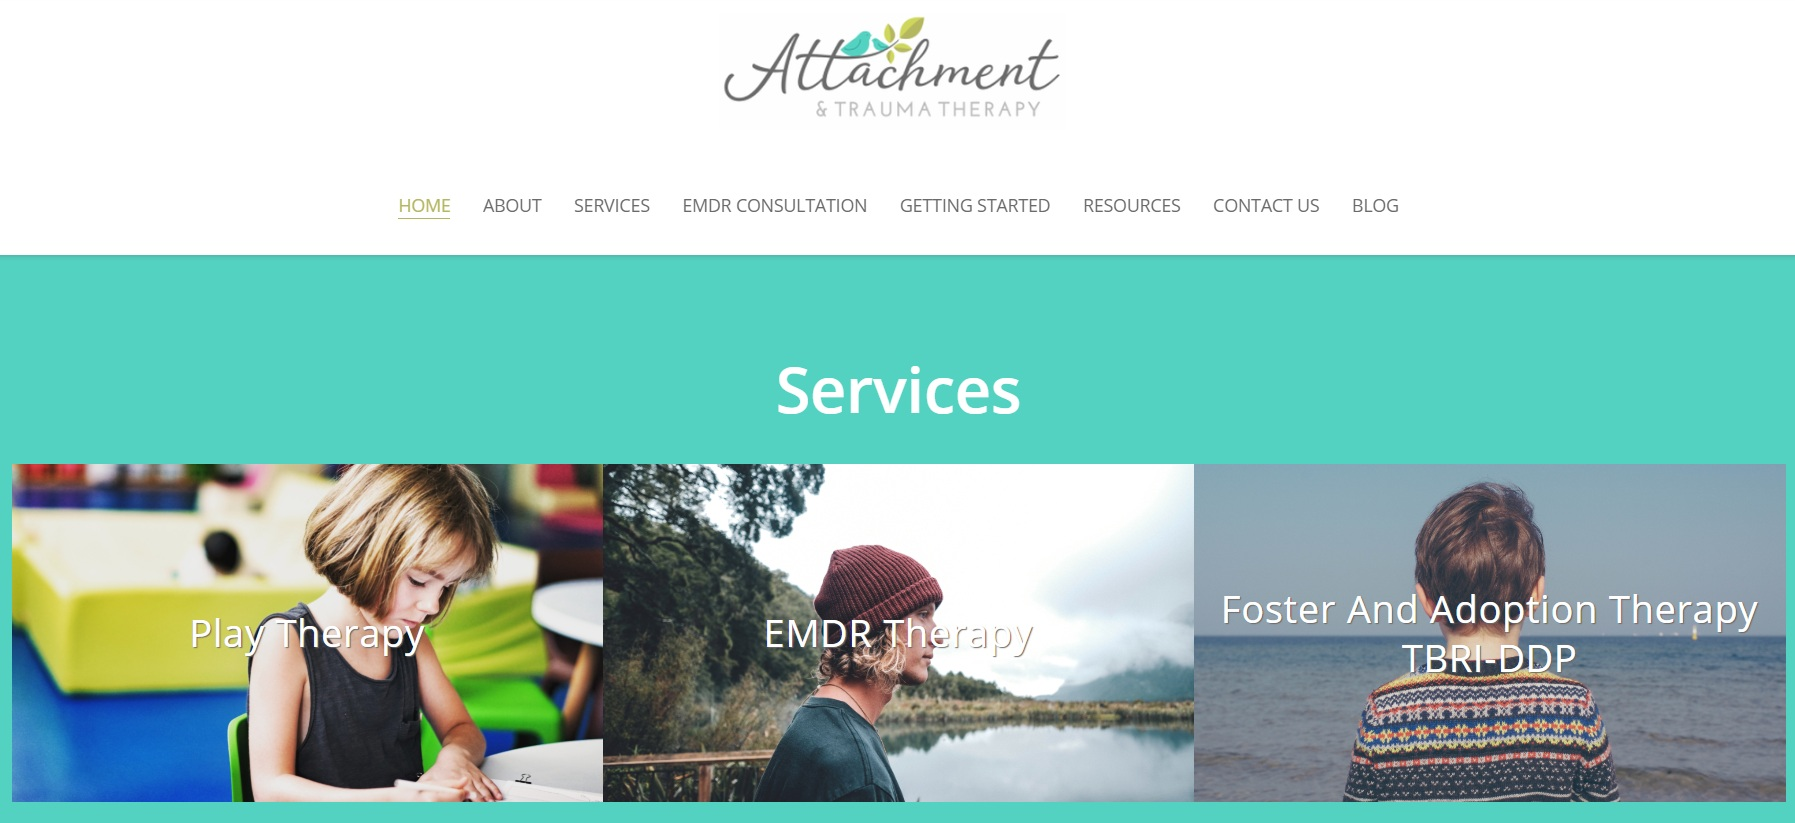 client spotlight - attachment and trauma therapy llc